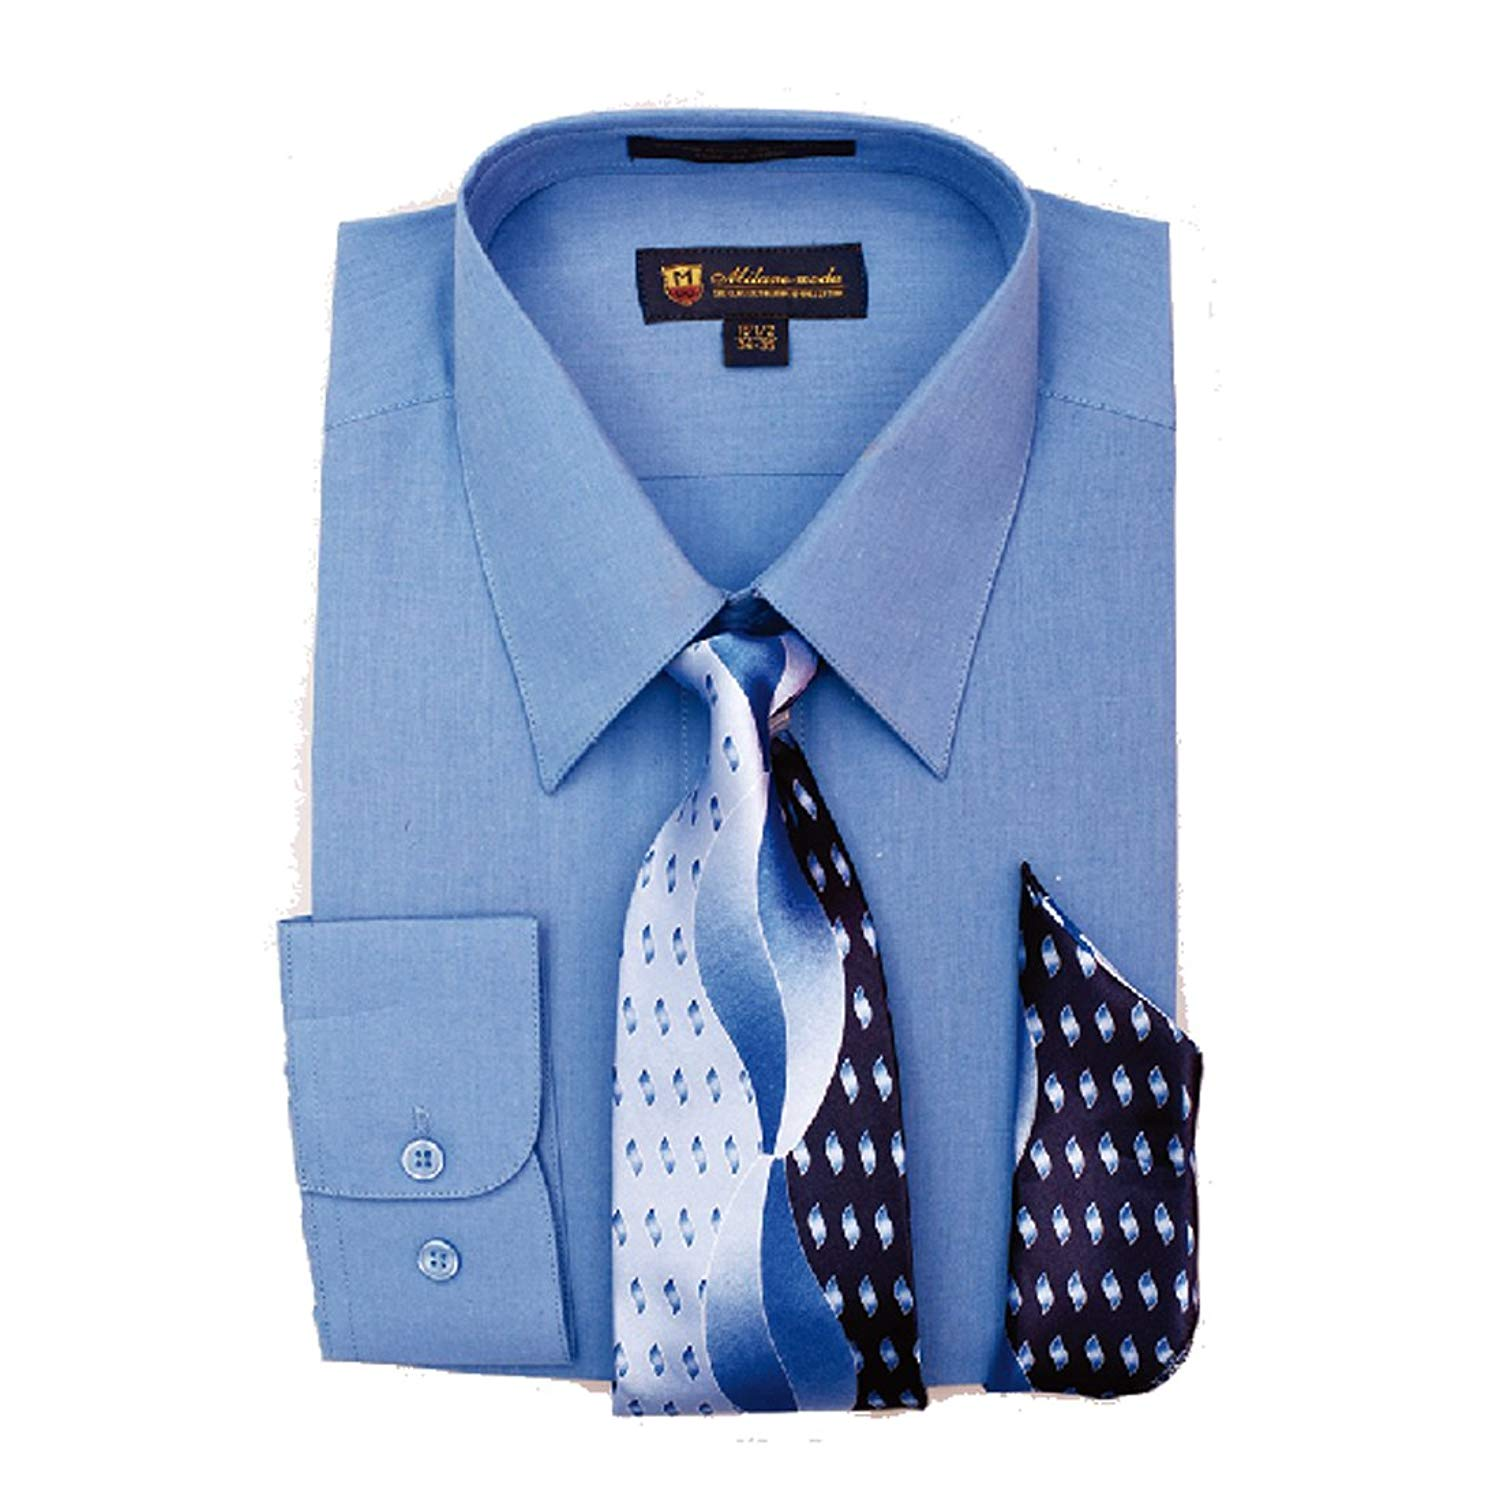 4b630a0ad Get Quotations · Milano Moda Men's Dress Shirt with Tie/Handkerchief HLSG21 New  York Brand